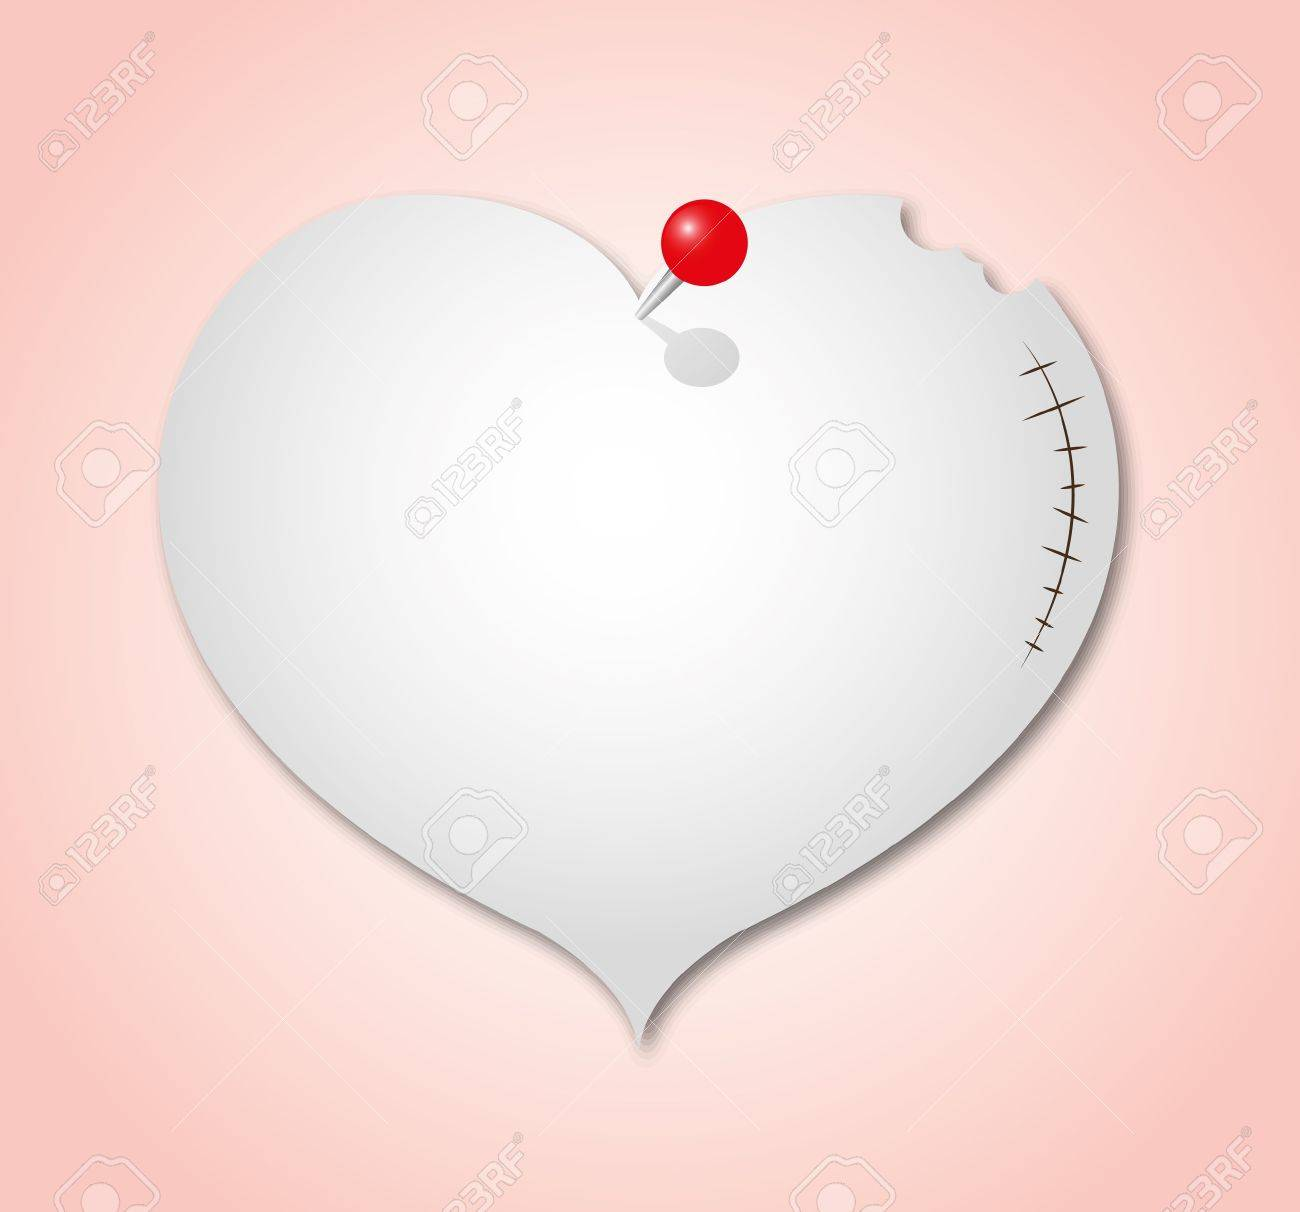 The broken heart paper note with red pin